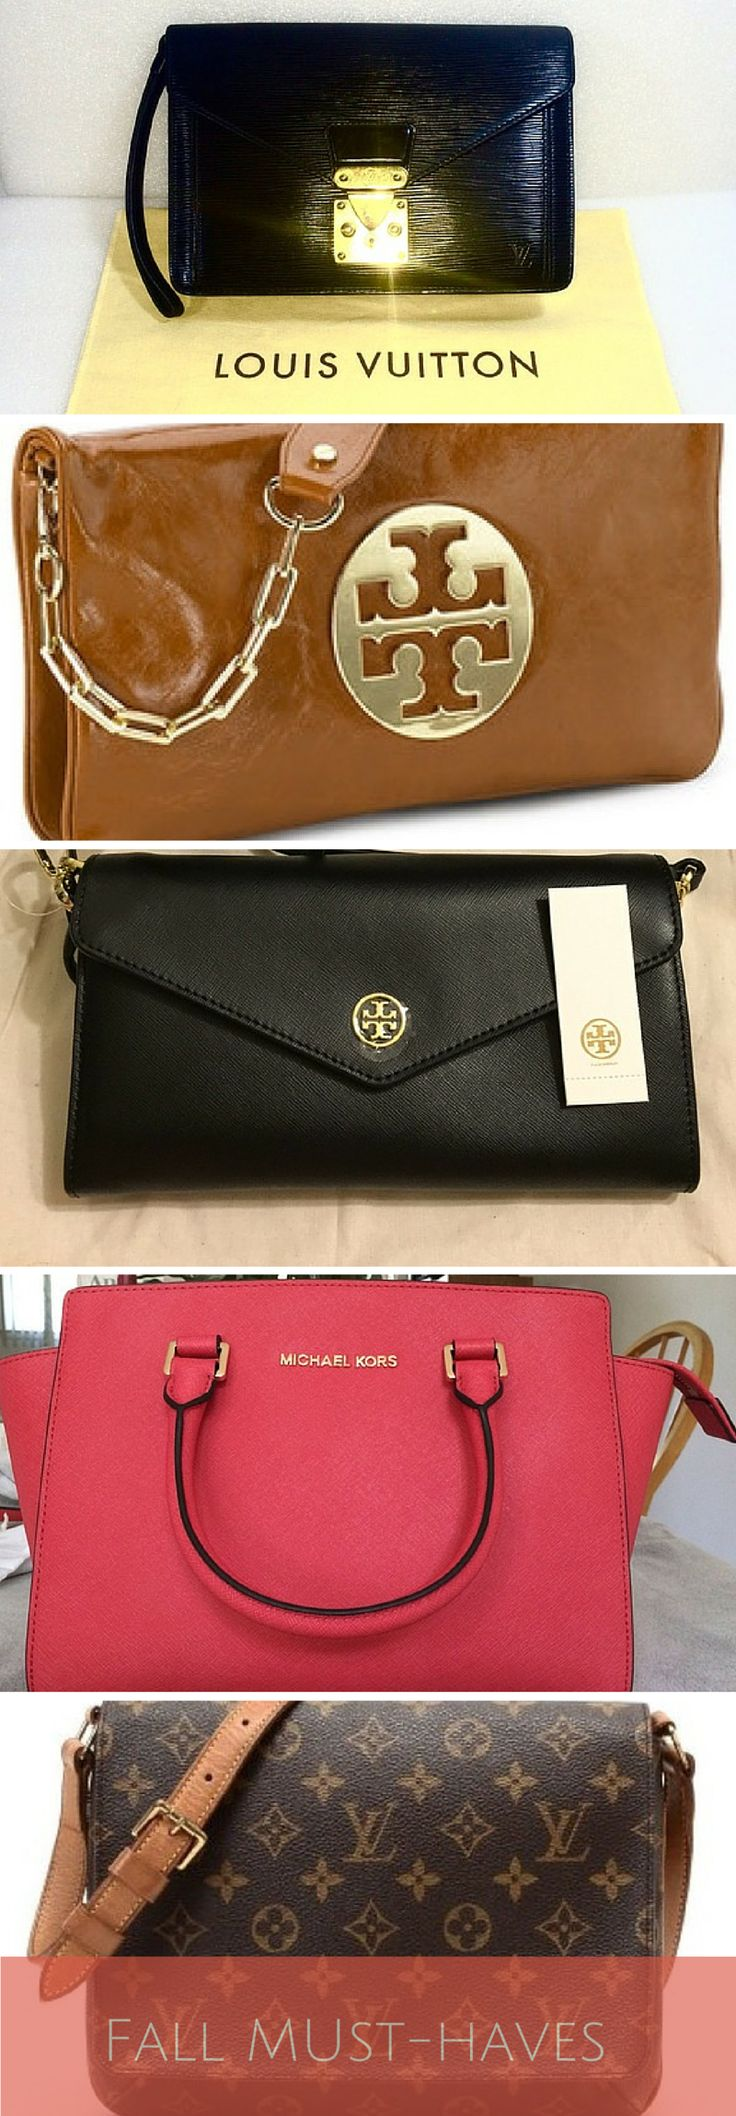 Never pay full price again! Shop Tory Burch, Michael Kors, Louis Vuitton and other brands at up to 70% off! As featured in Cosmopolitan & Good Morning America.